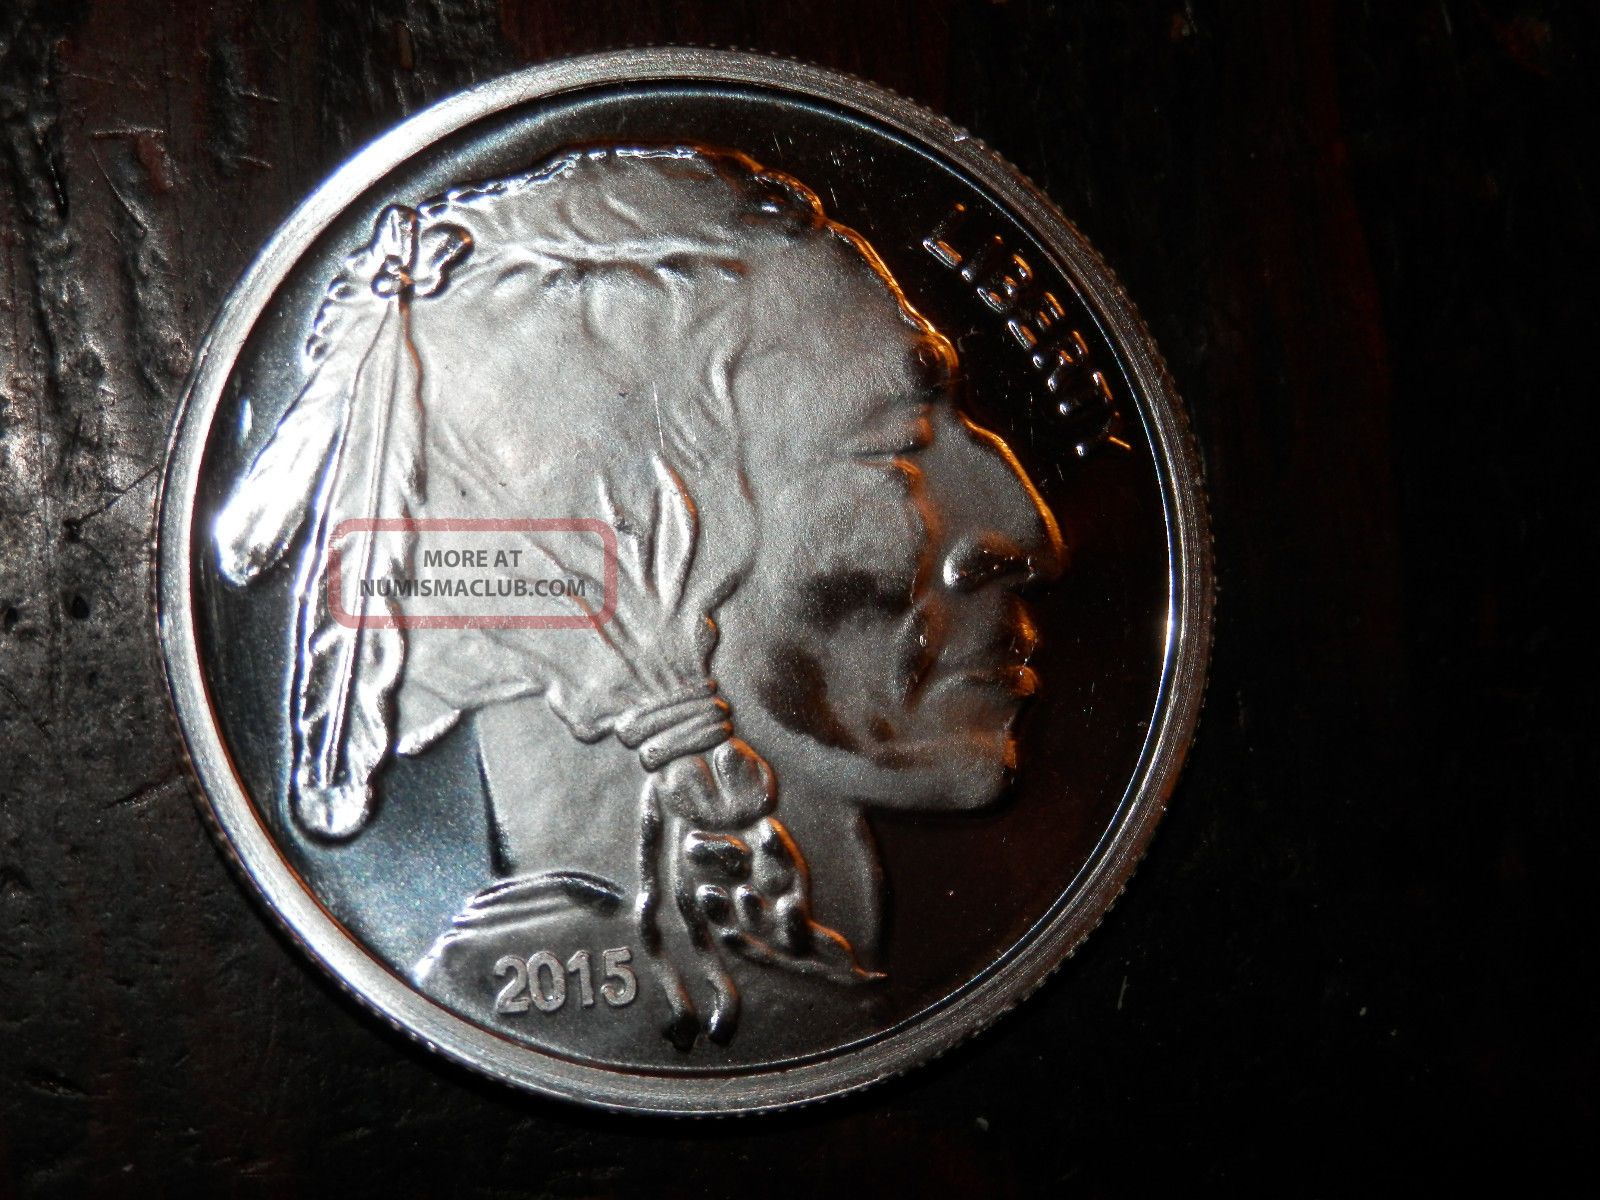 2015 Indian Head And Buffalo Silver Coin 1 Oz 999 Fine